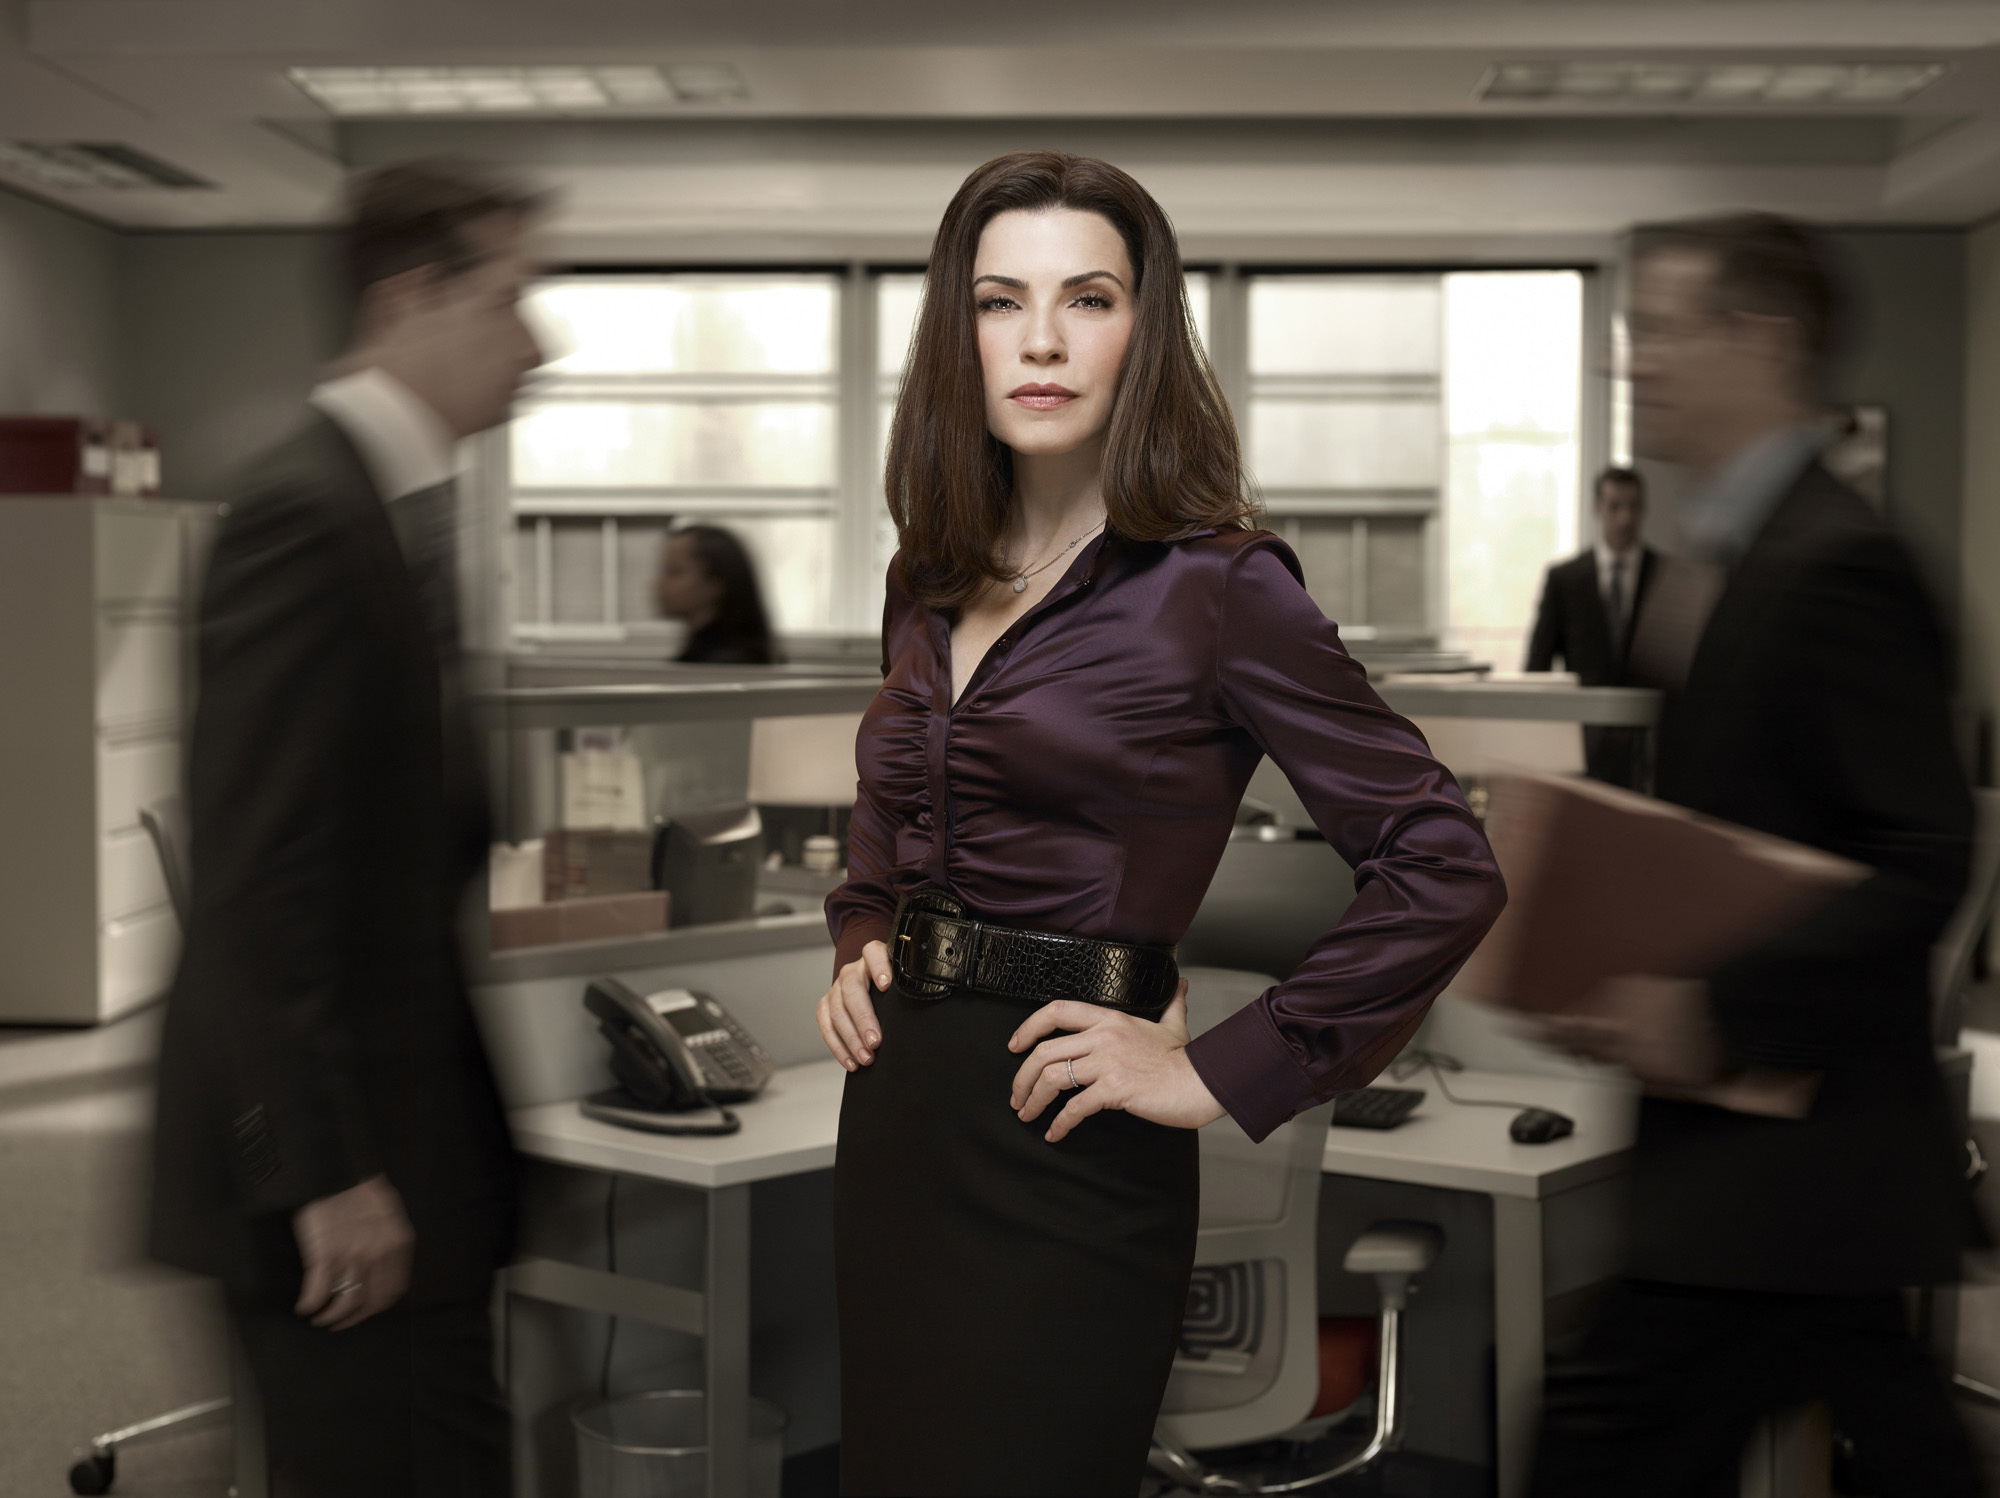 10 Best Dressed TV Stars And Shows - Alicia Florrick (Julianna Margulies) - The Good Wife